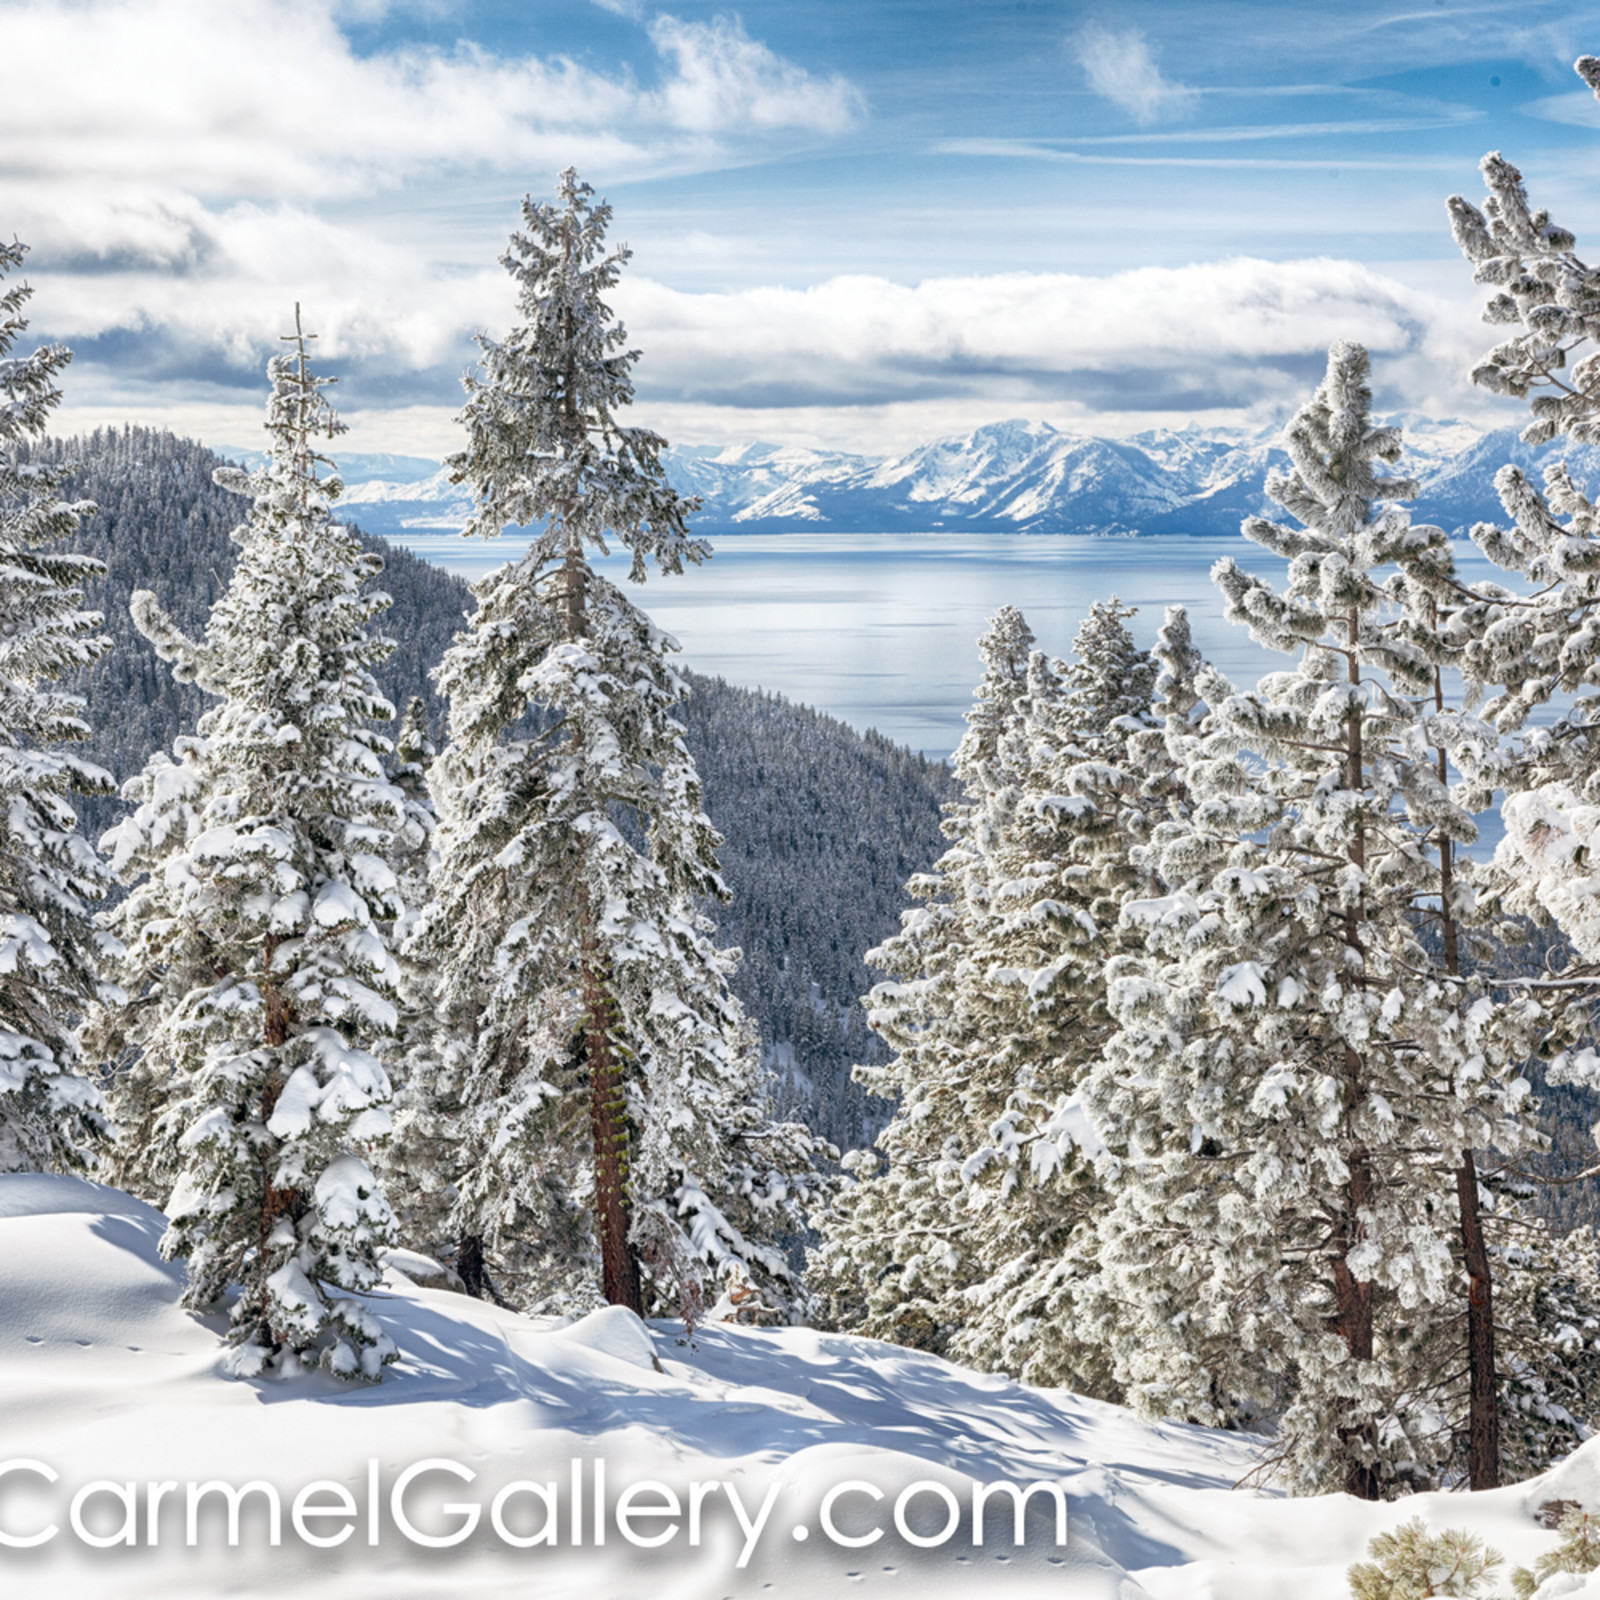 Clearing tahoe storm kf8sol